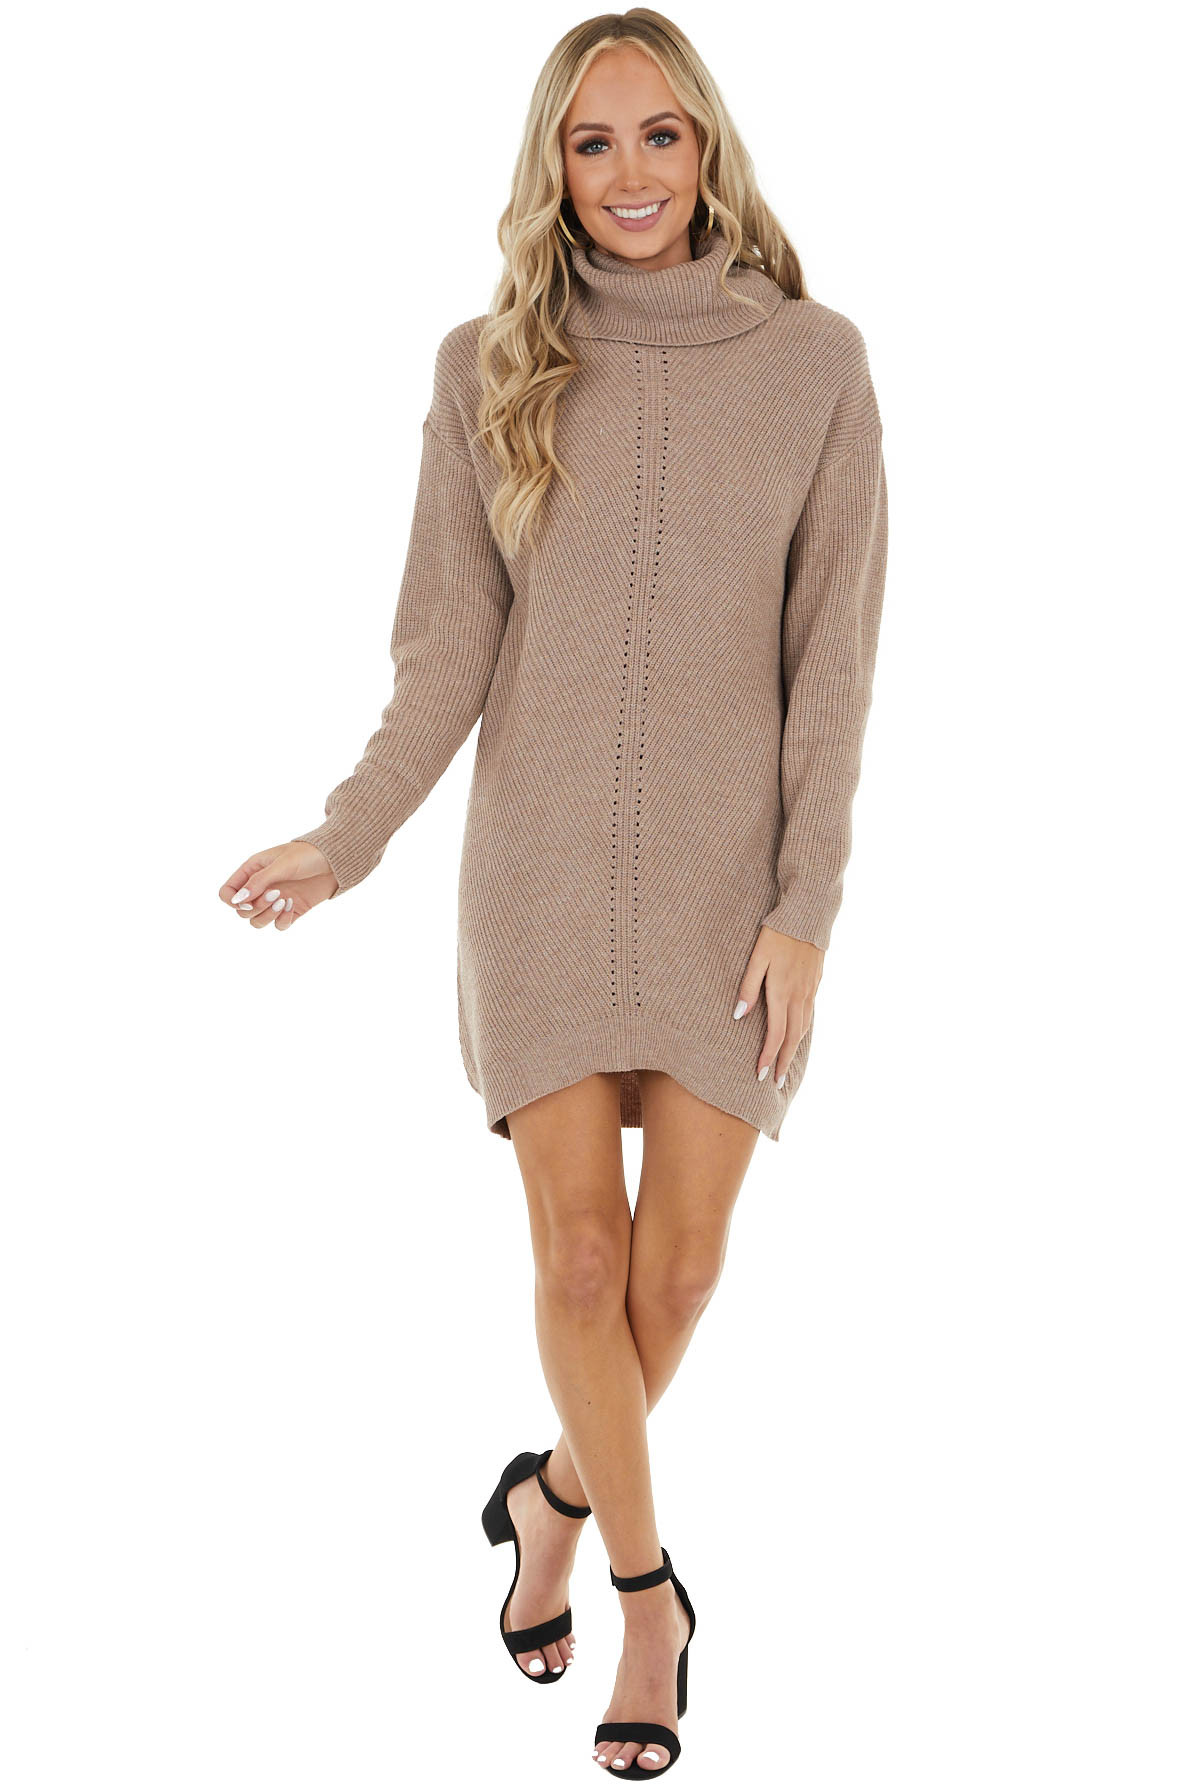 Taupe Cowl Neck Sweater Dress with Small Cutout Details